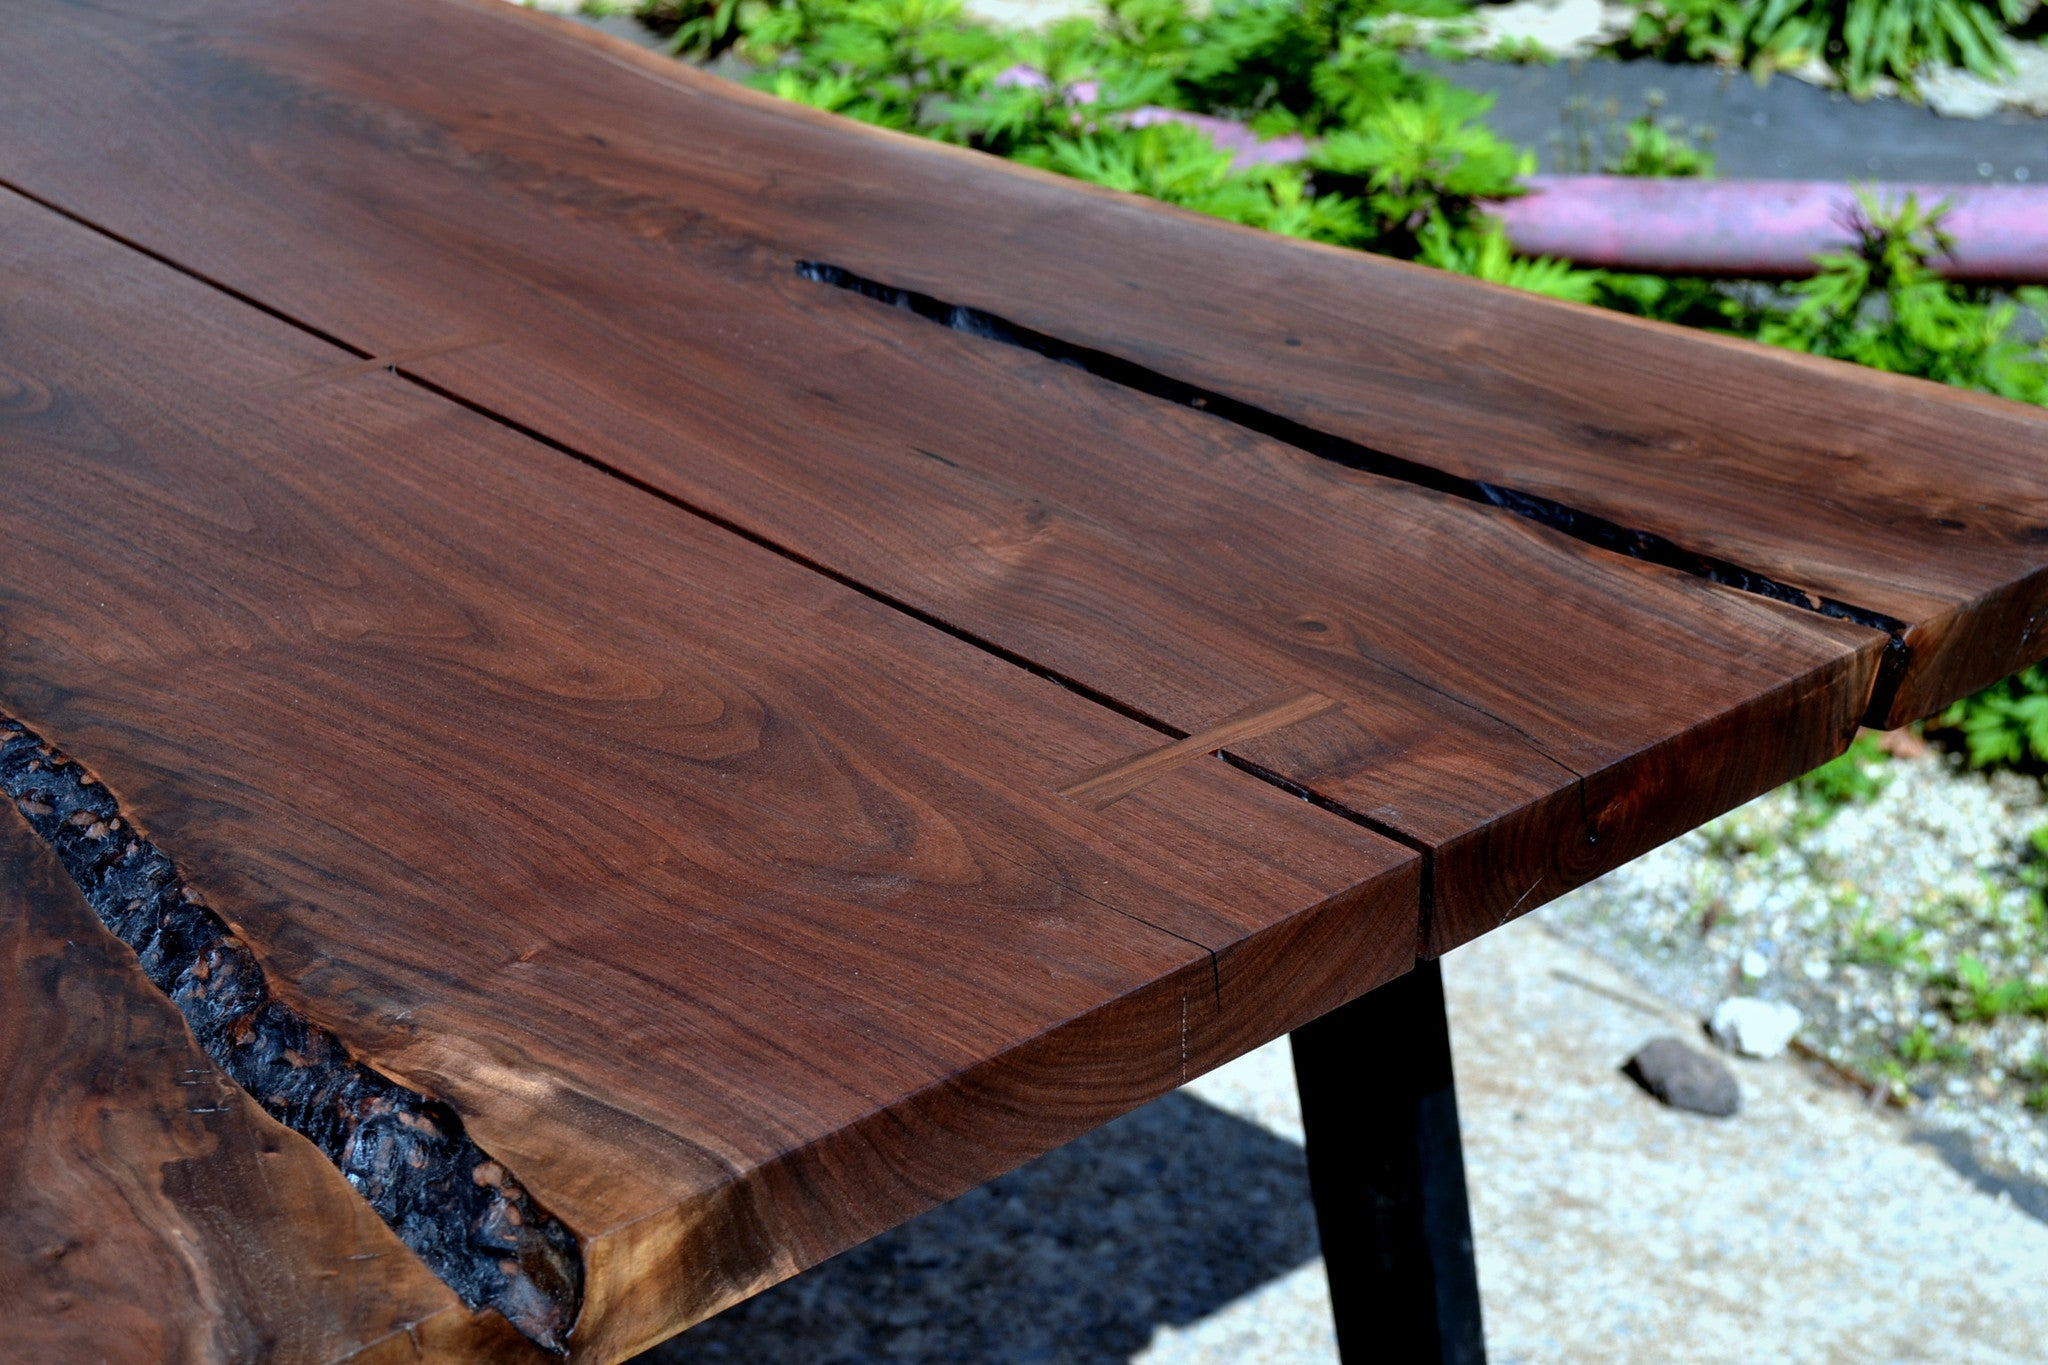 Bookmatched Walnut Dining Table